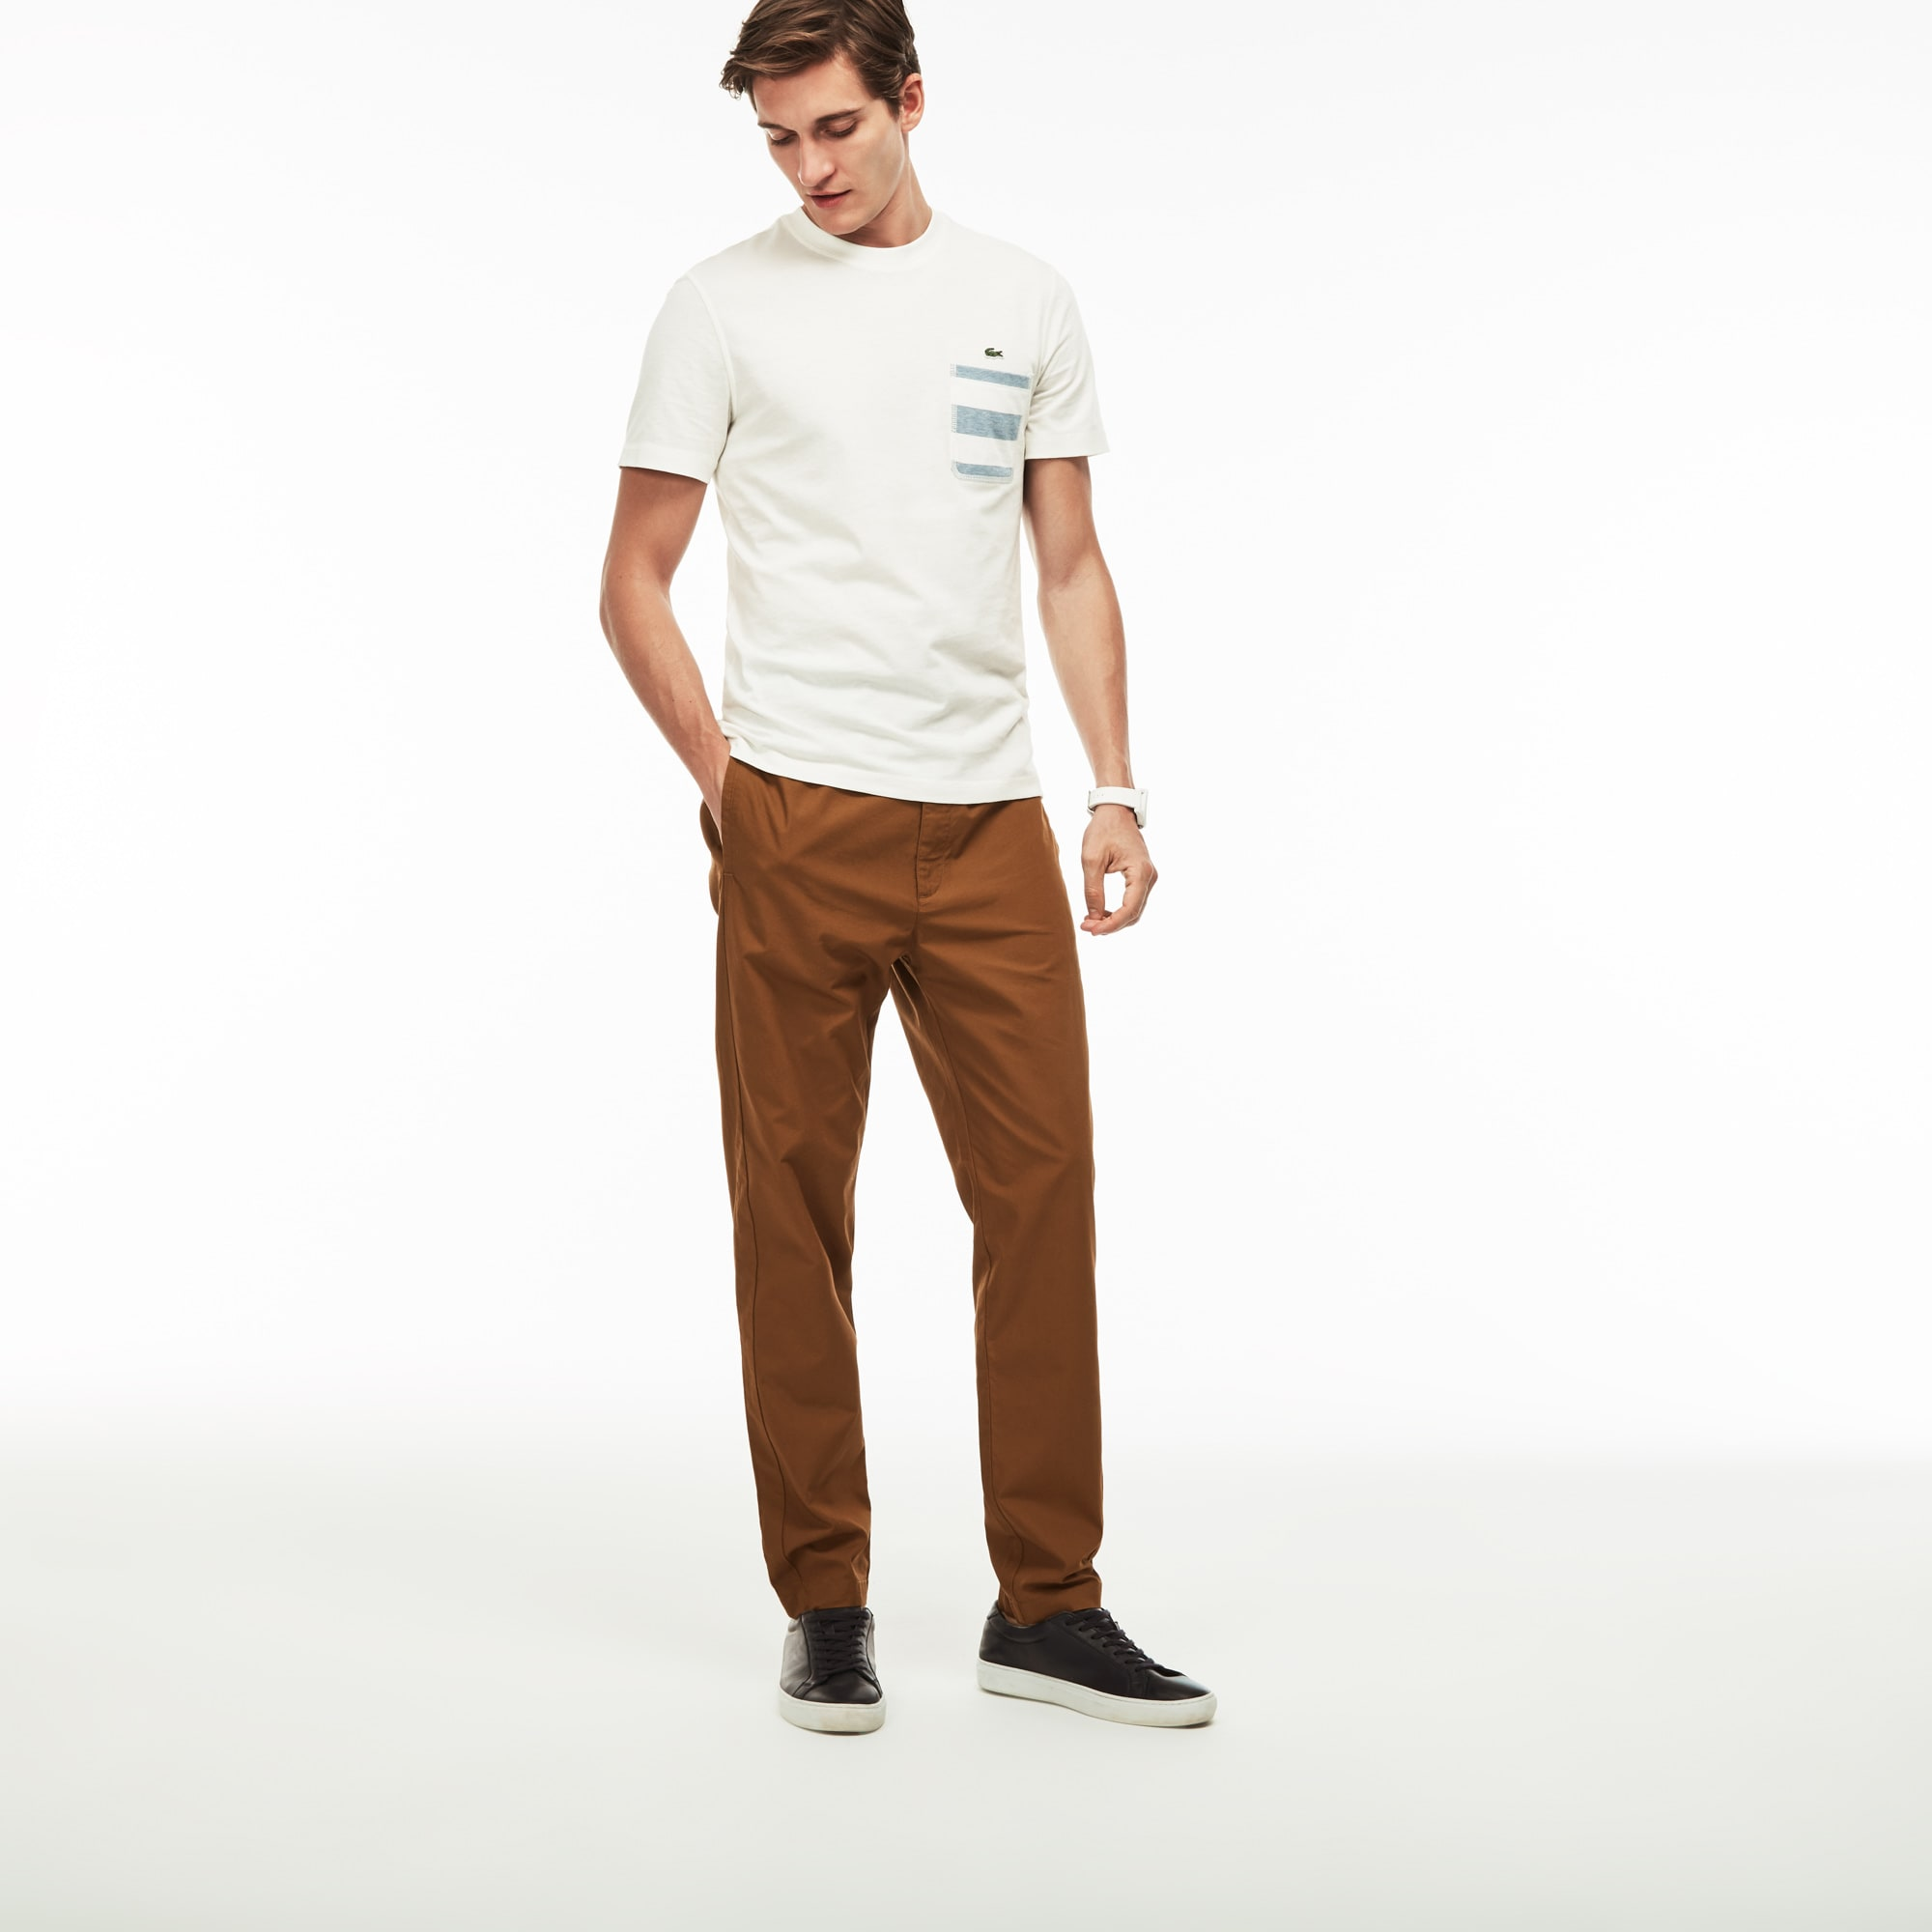 Pantalon en coton technique uni